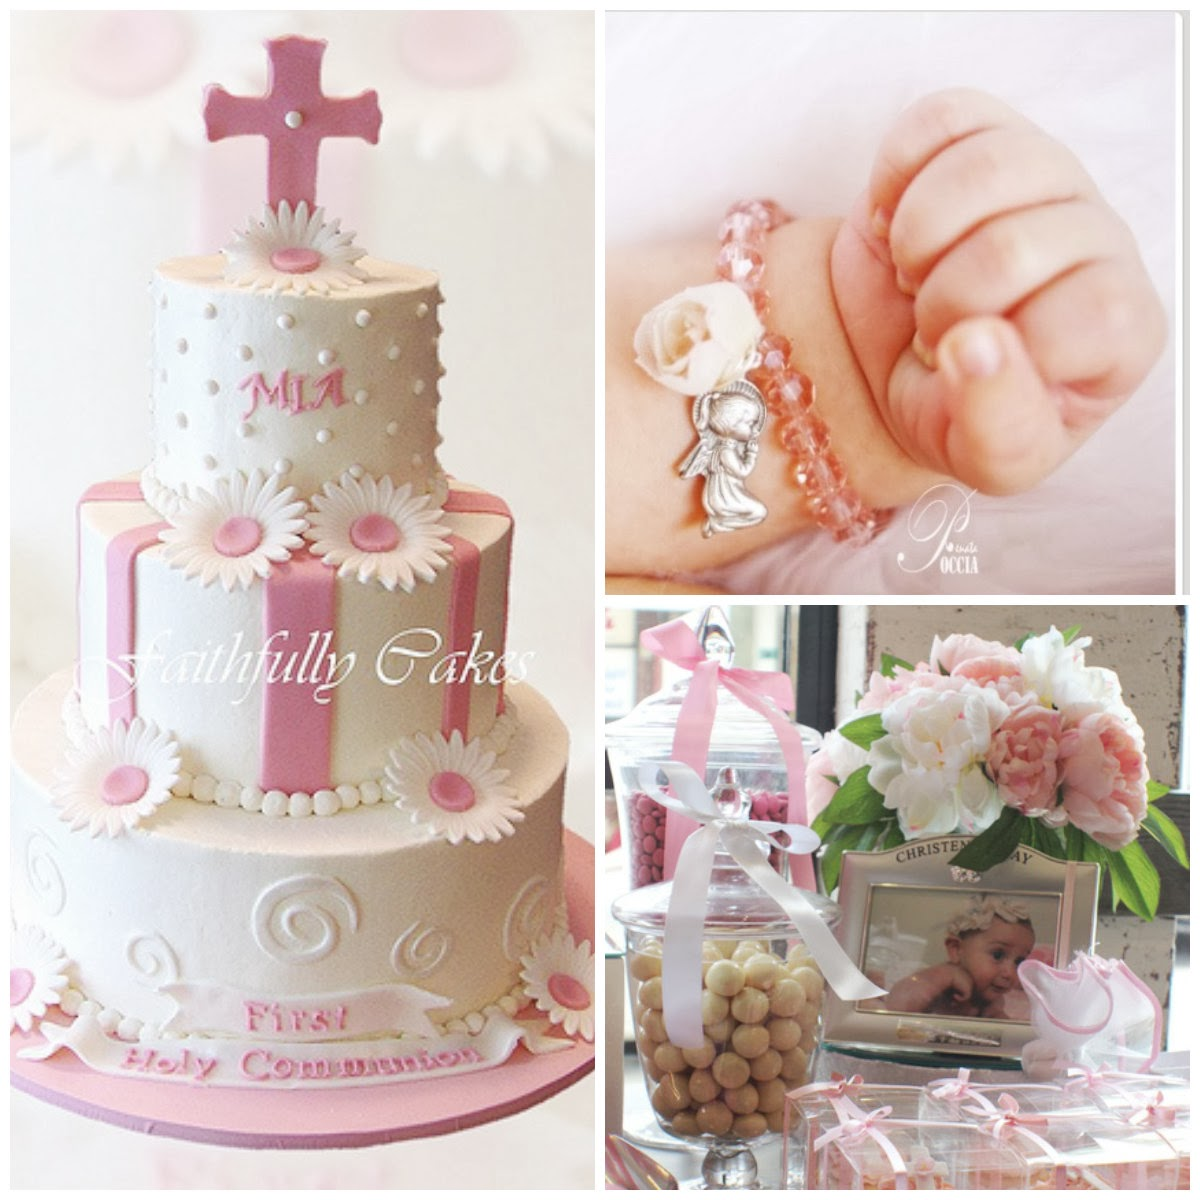 Baby Baptism Gift Ideas Pinterest : Event soiree a baptism idea board